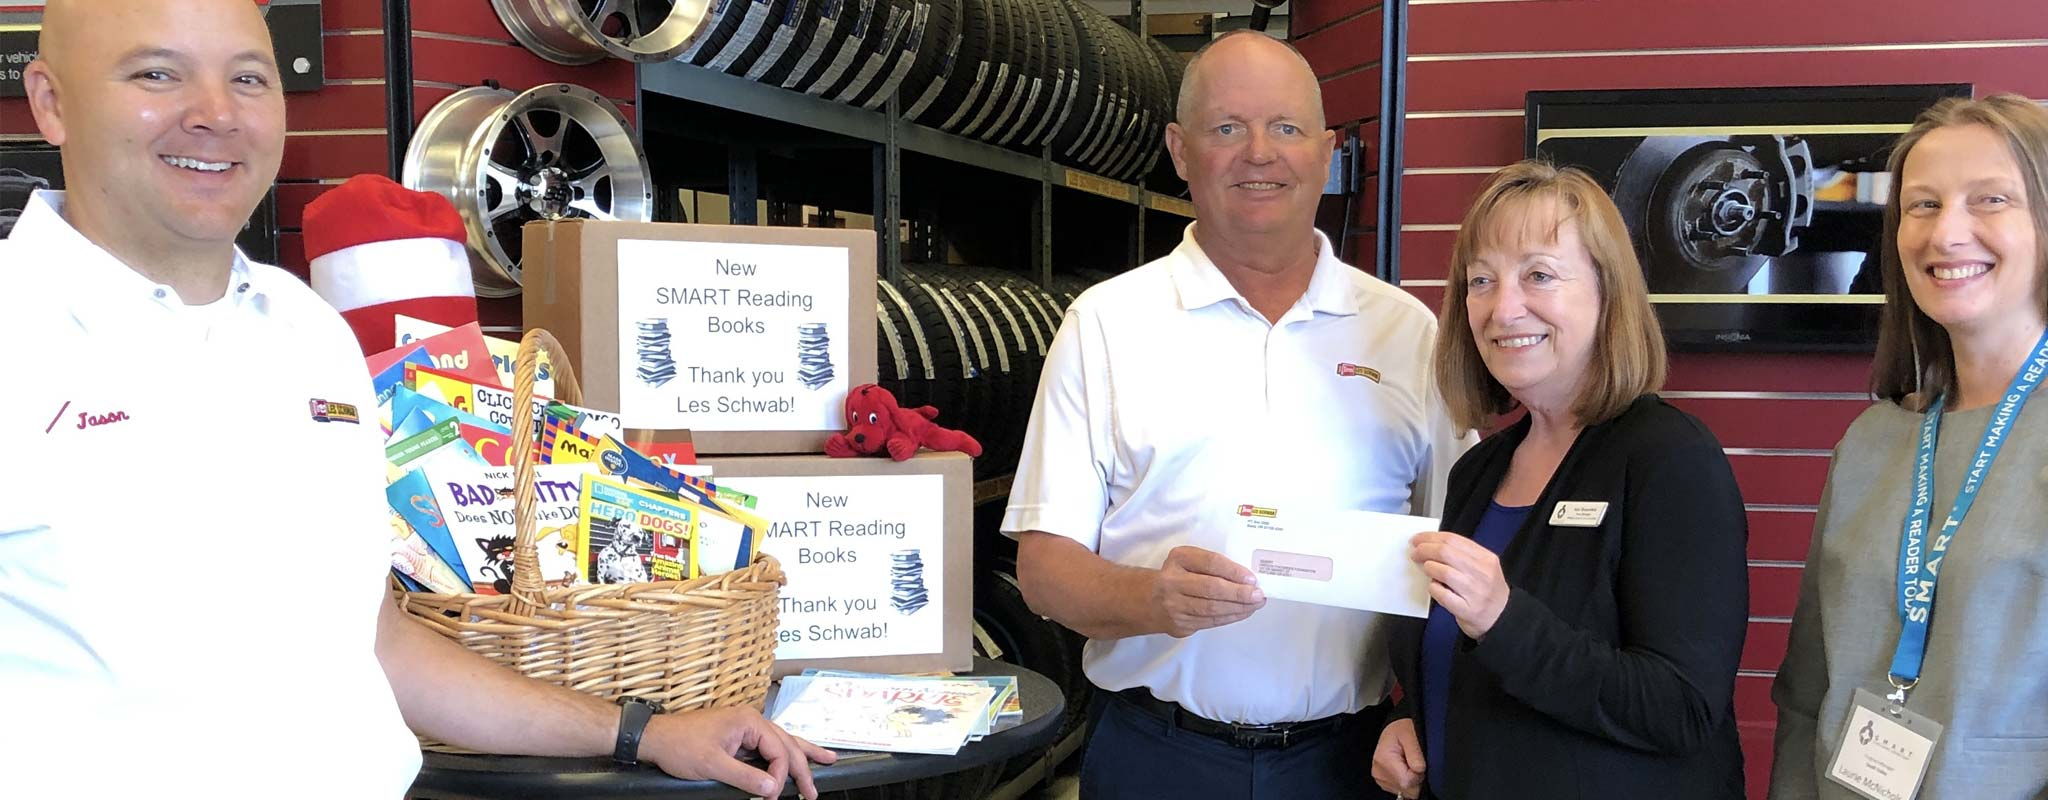 Les Schwab employees donating money that bought books for SMART in Lane County